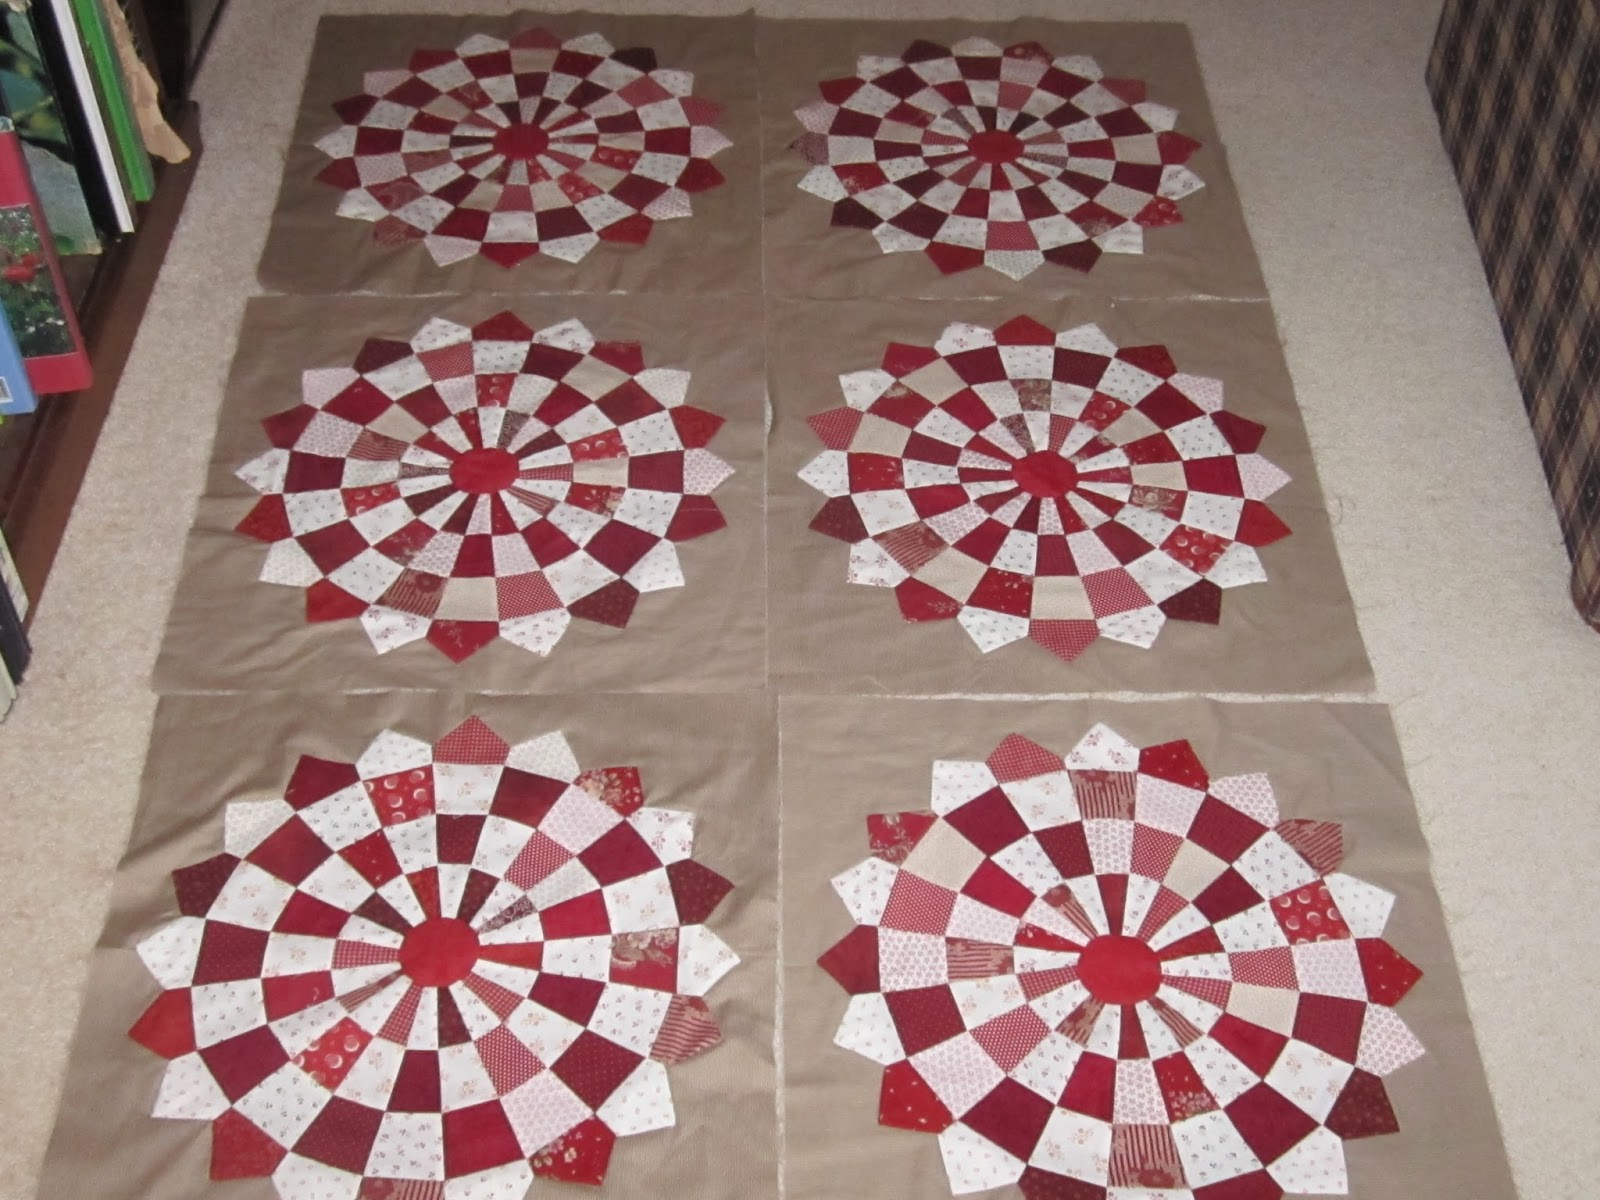 Mother Patchwork Red And White Dresden Quilt Finished